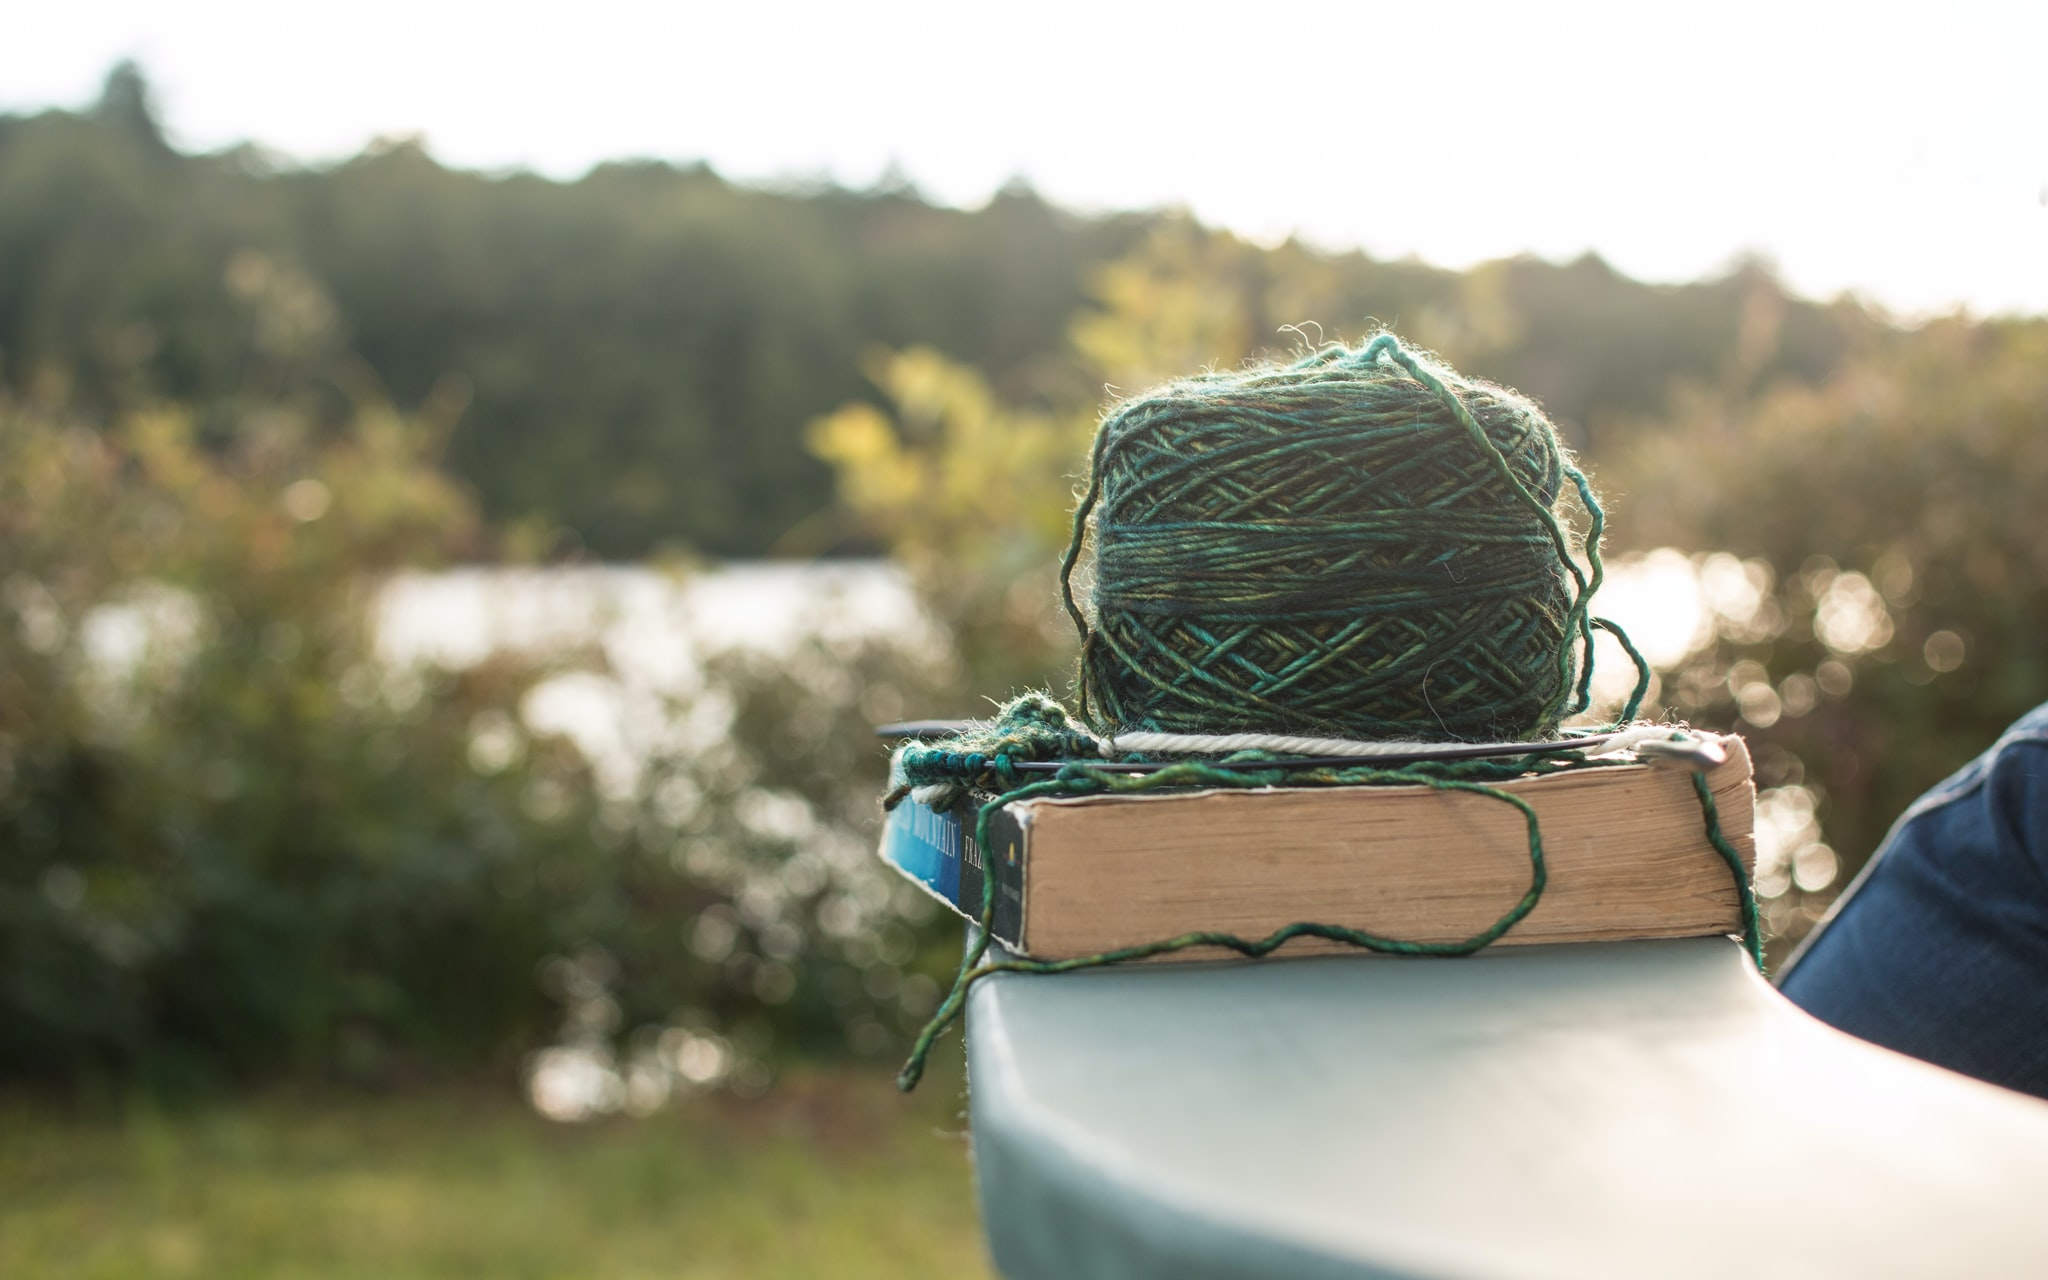 A ball of yarn on a book on a ledge near a lake